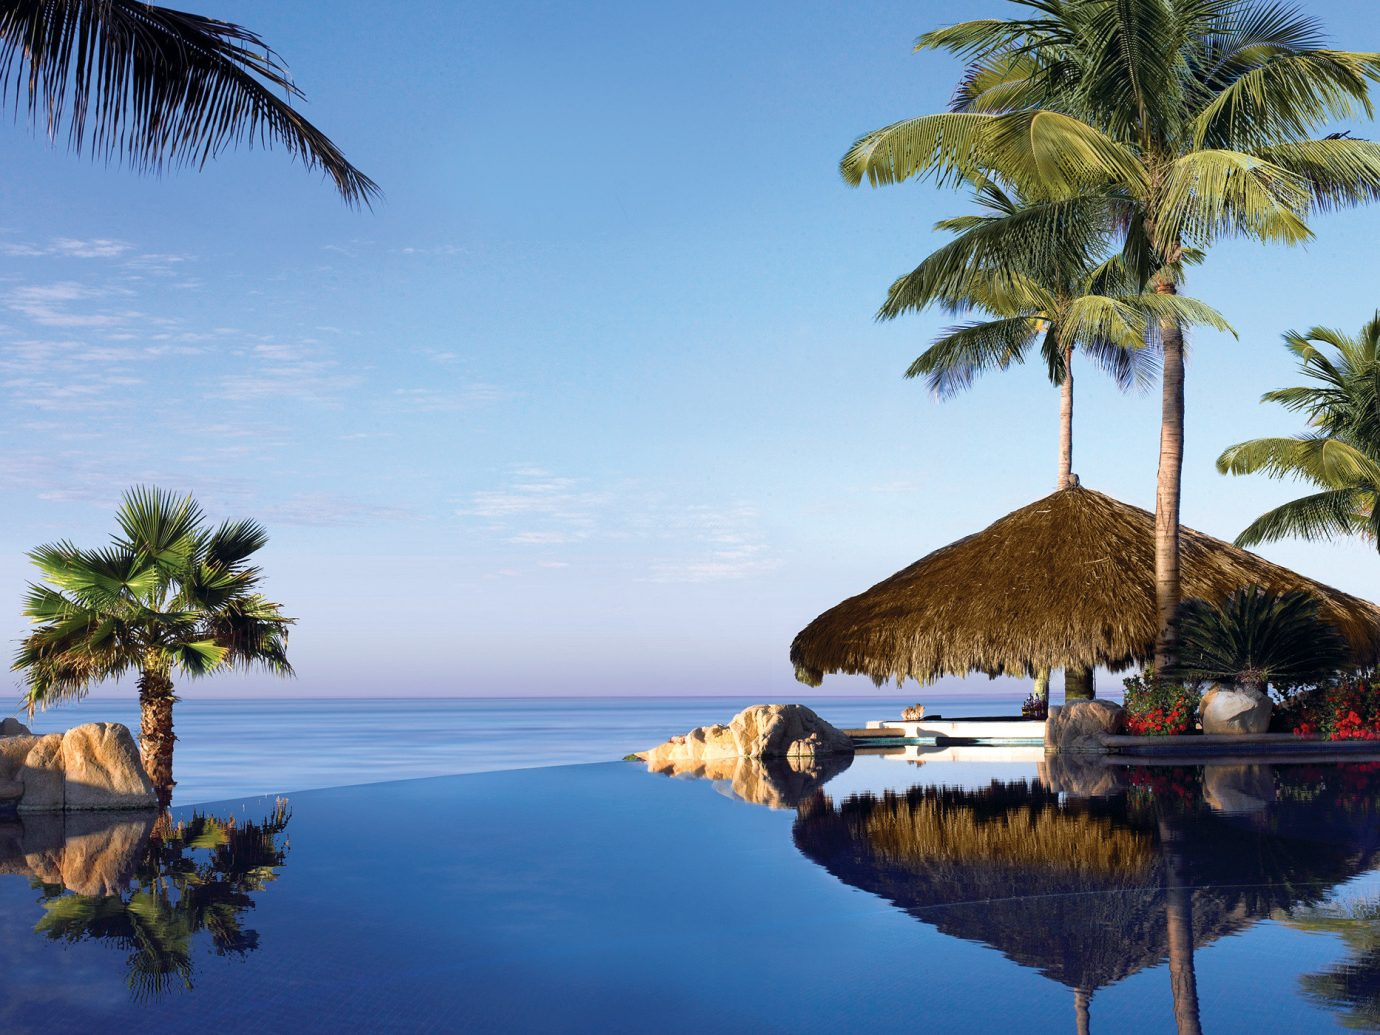 Beachfront Hotels Play Pool Resort Romance Scenic views tree water outdoor sky Sea Beach Ocean Coast body of water shore Lake vacation palm family palm plant caribbean tropics arecales bay woody plant reflection Island Lagoon cape islet dusk cove flower overlooking shade surrounded